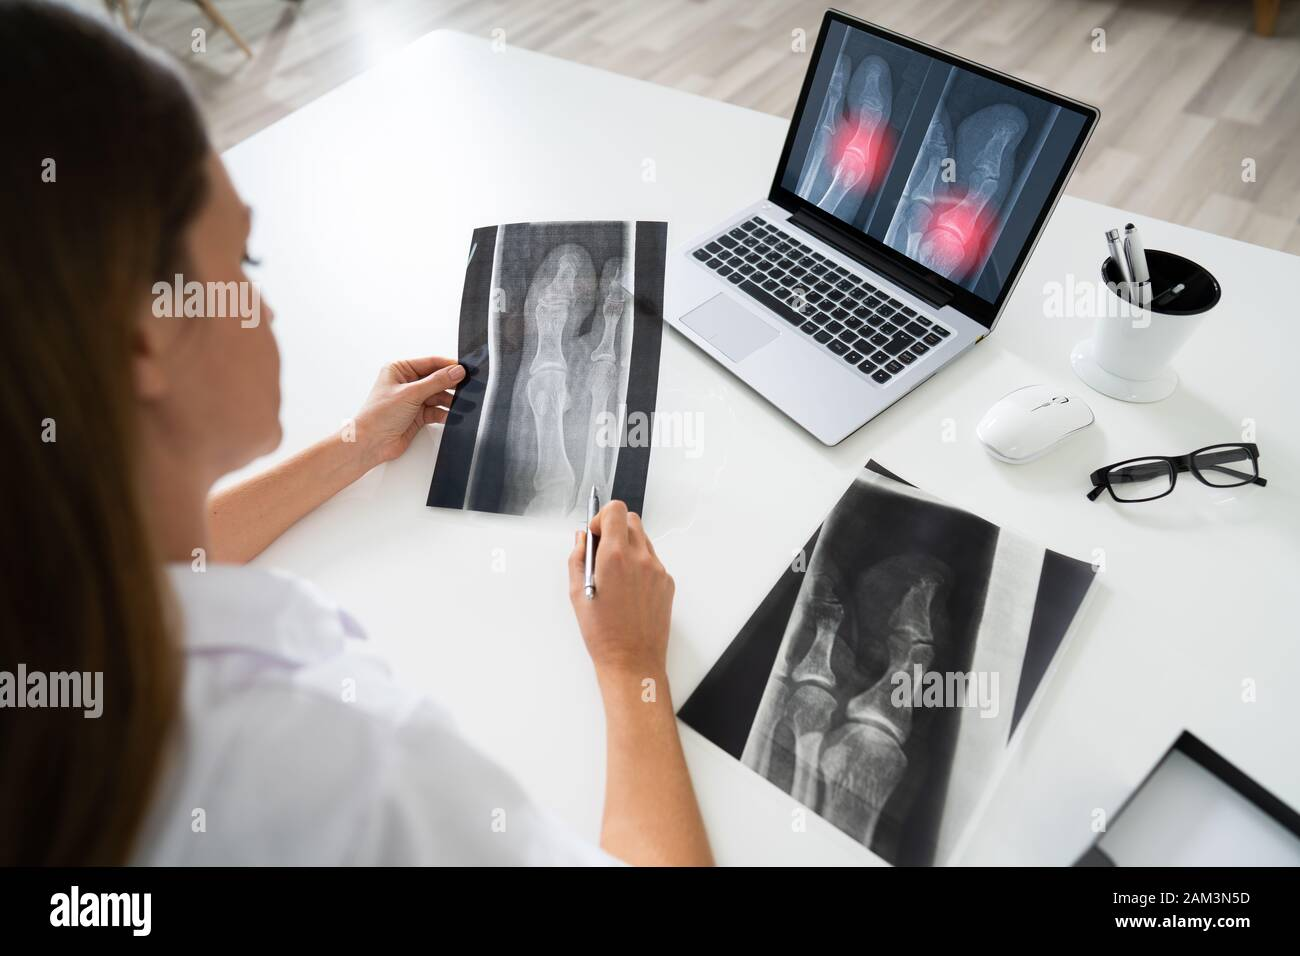 Female Doctor Examining Knee X-ray On Laptop In Clinic Stock Photo